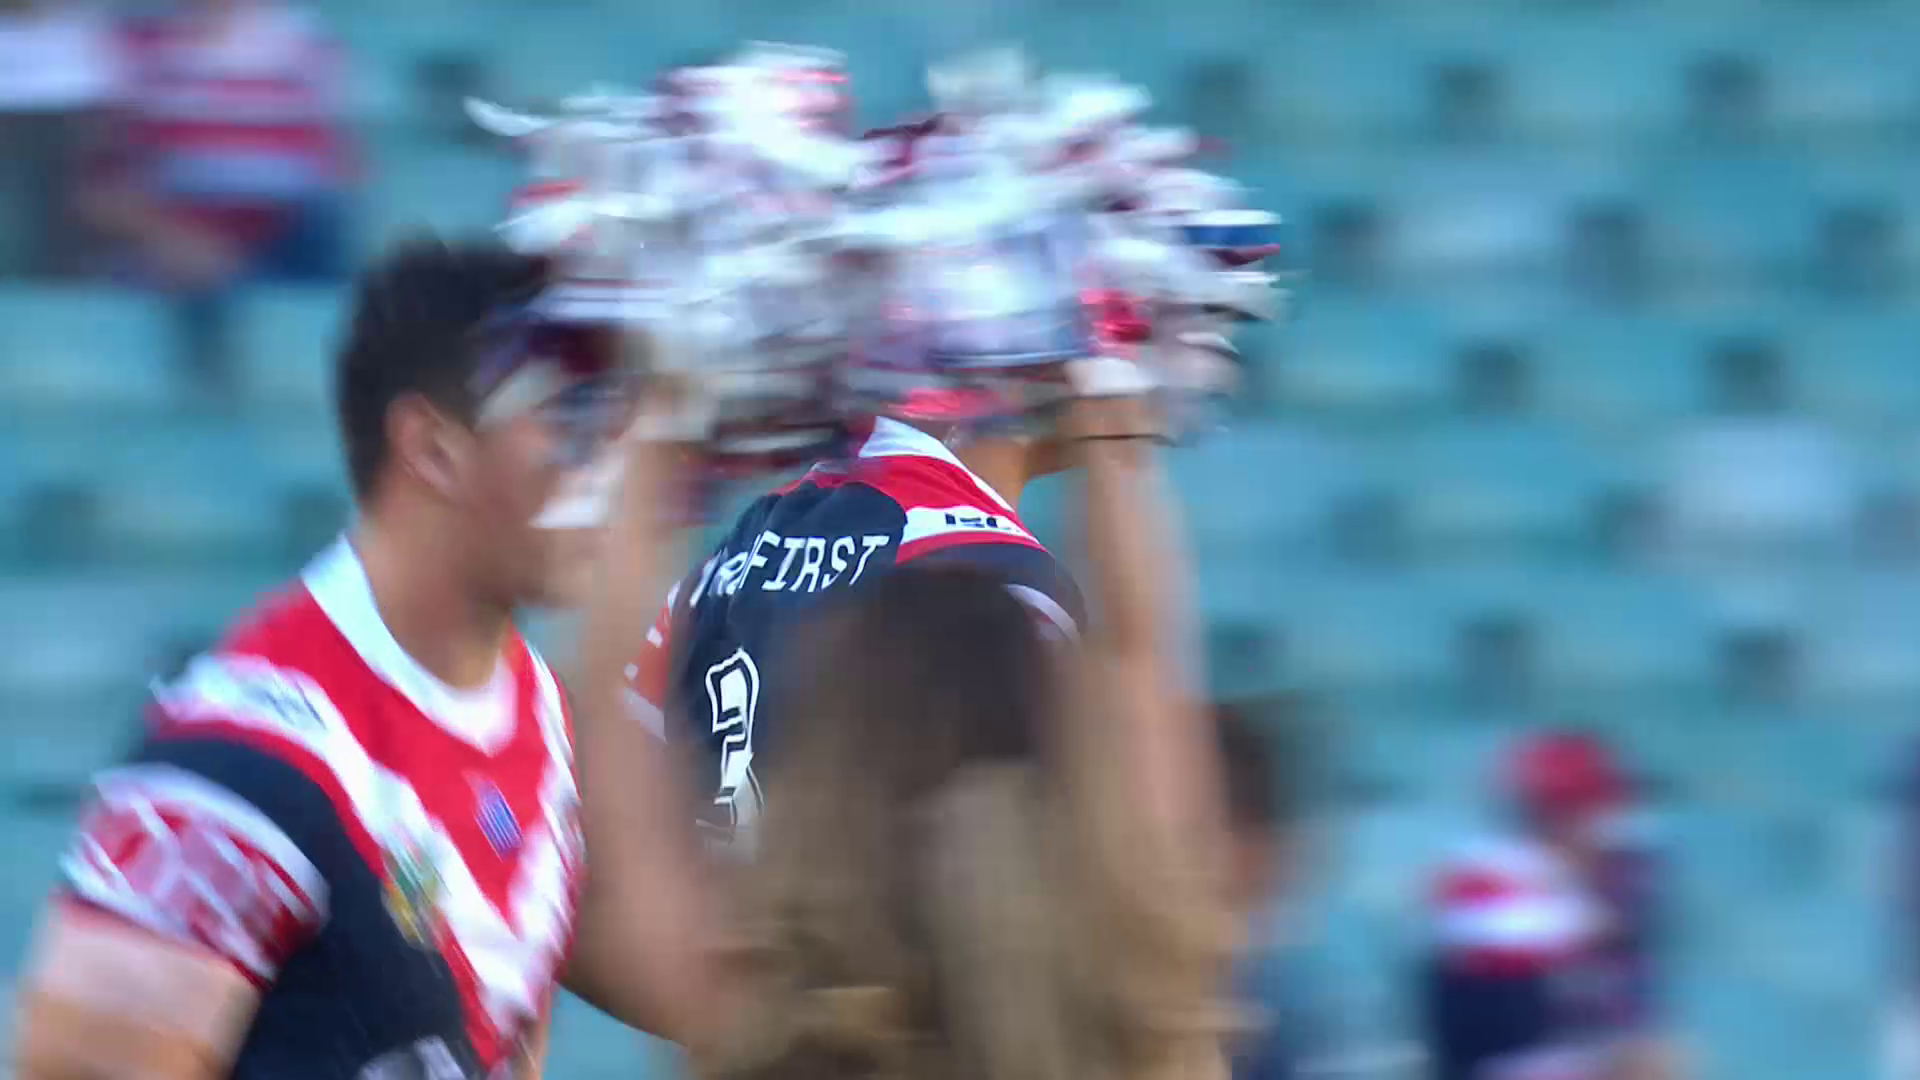 Full Match Replay: Roosters v Sea Eagles - Round 9, 2018